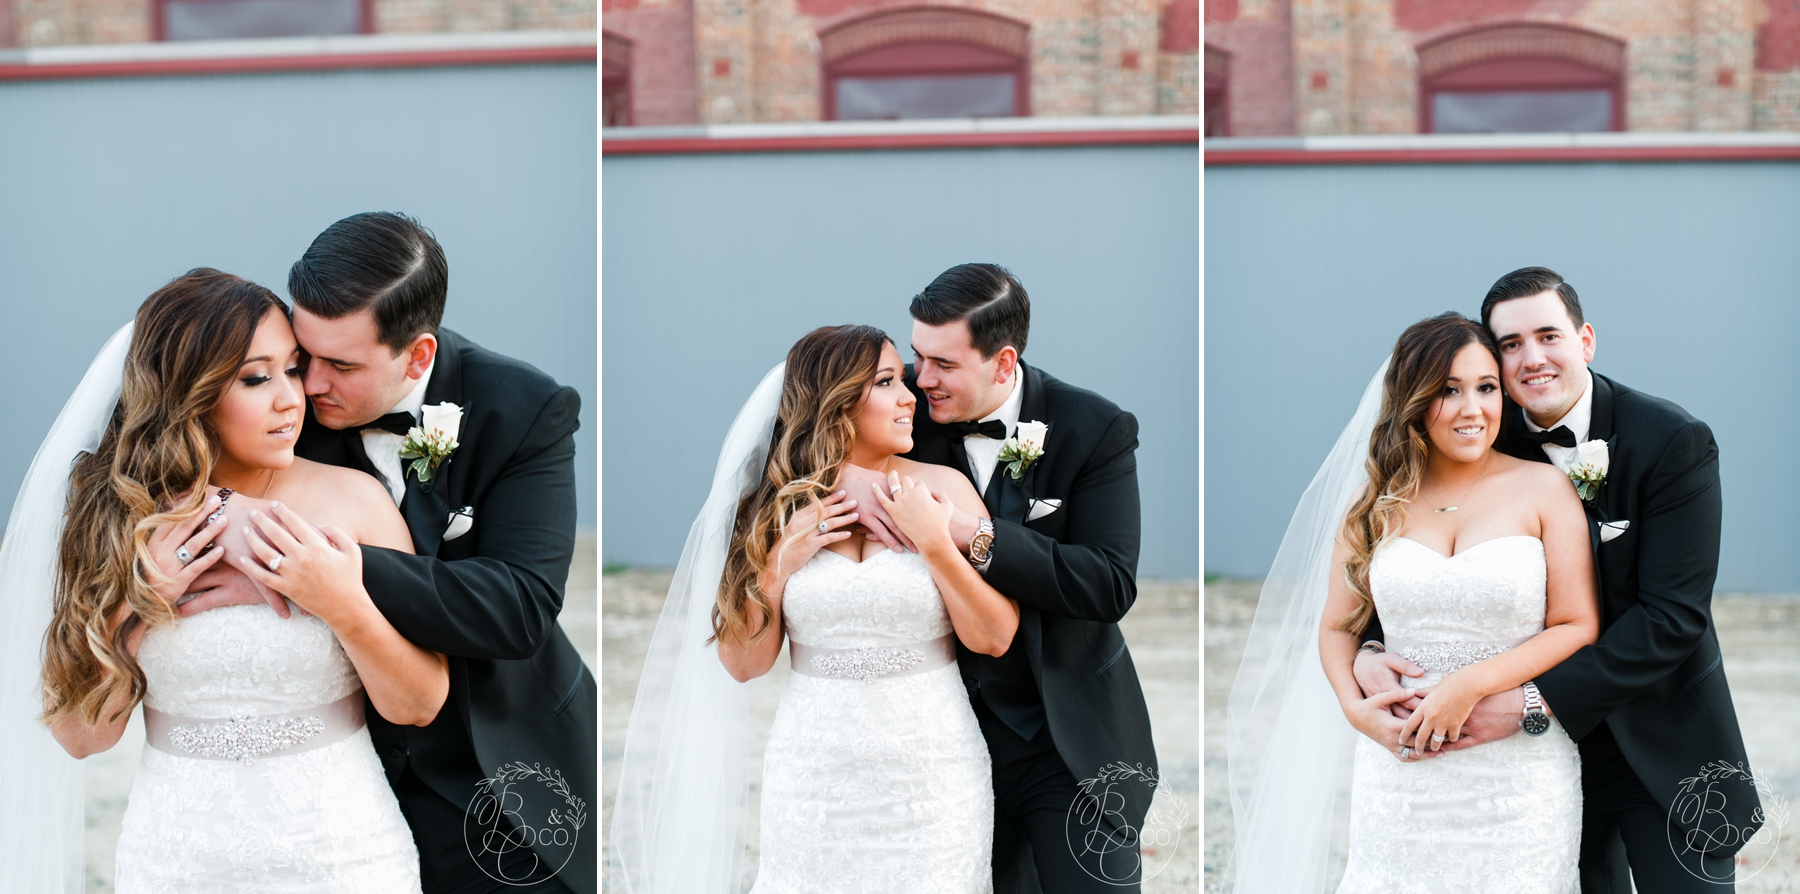 The-Mitten-Building-Wedding-Brianna-Caster-and-co-photographers-8